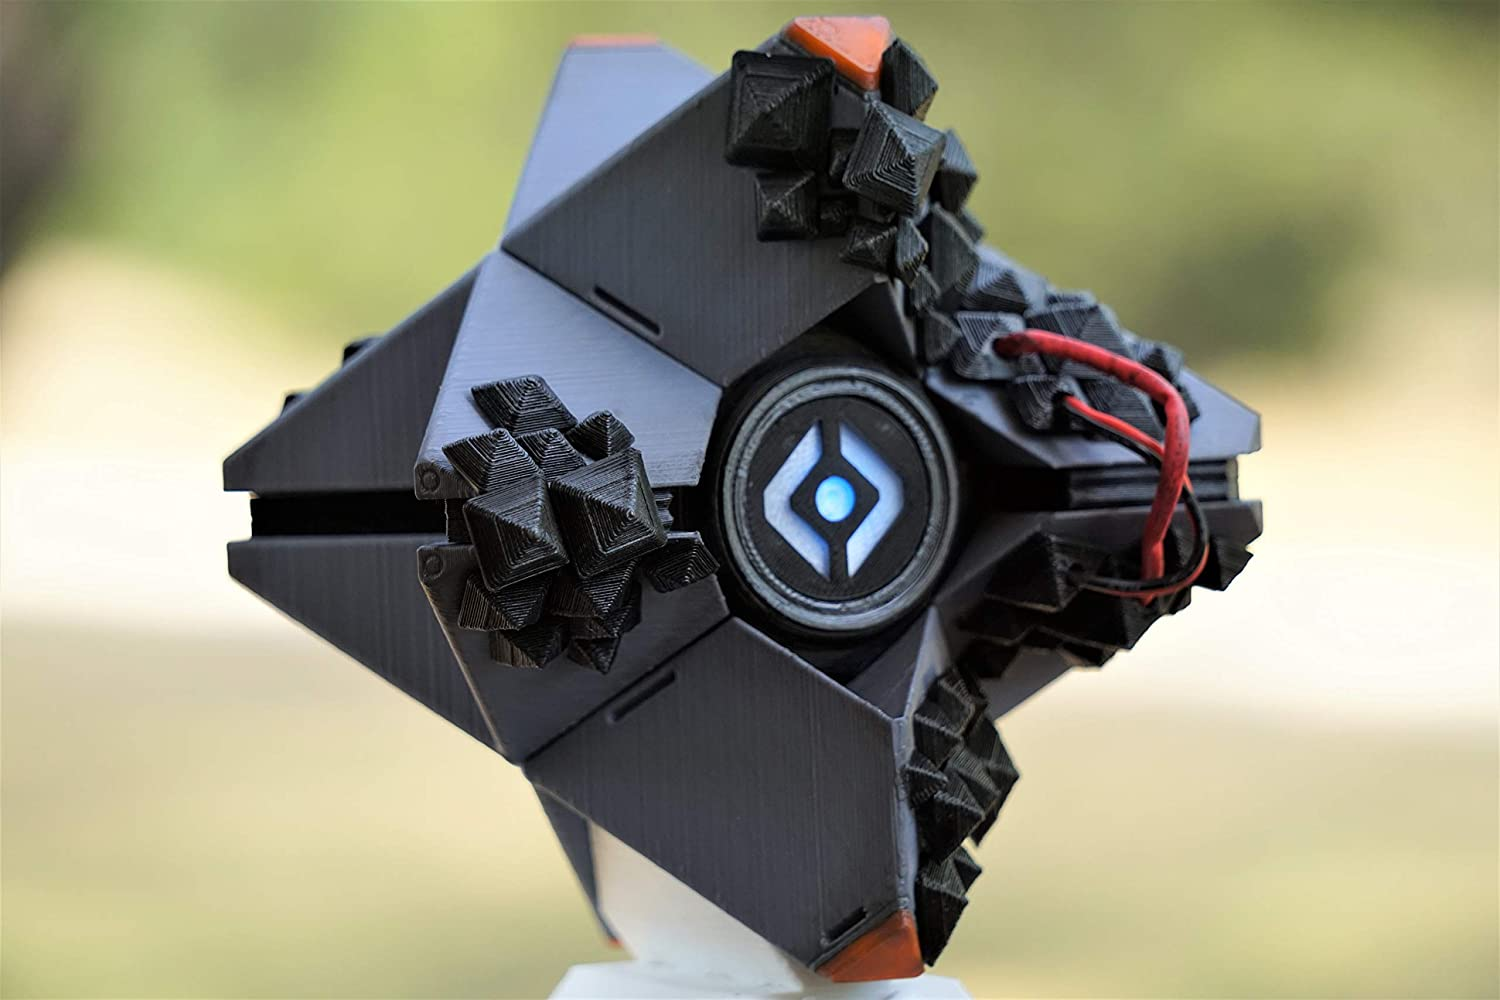 SIVA Destiny Ghost Life Size Fully Assembled Replica Pro with LED Light 3D Printed Display Stand Included